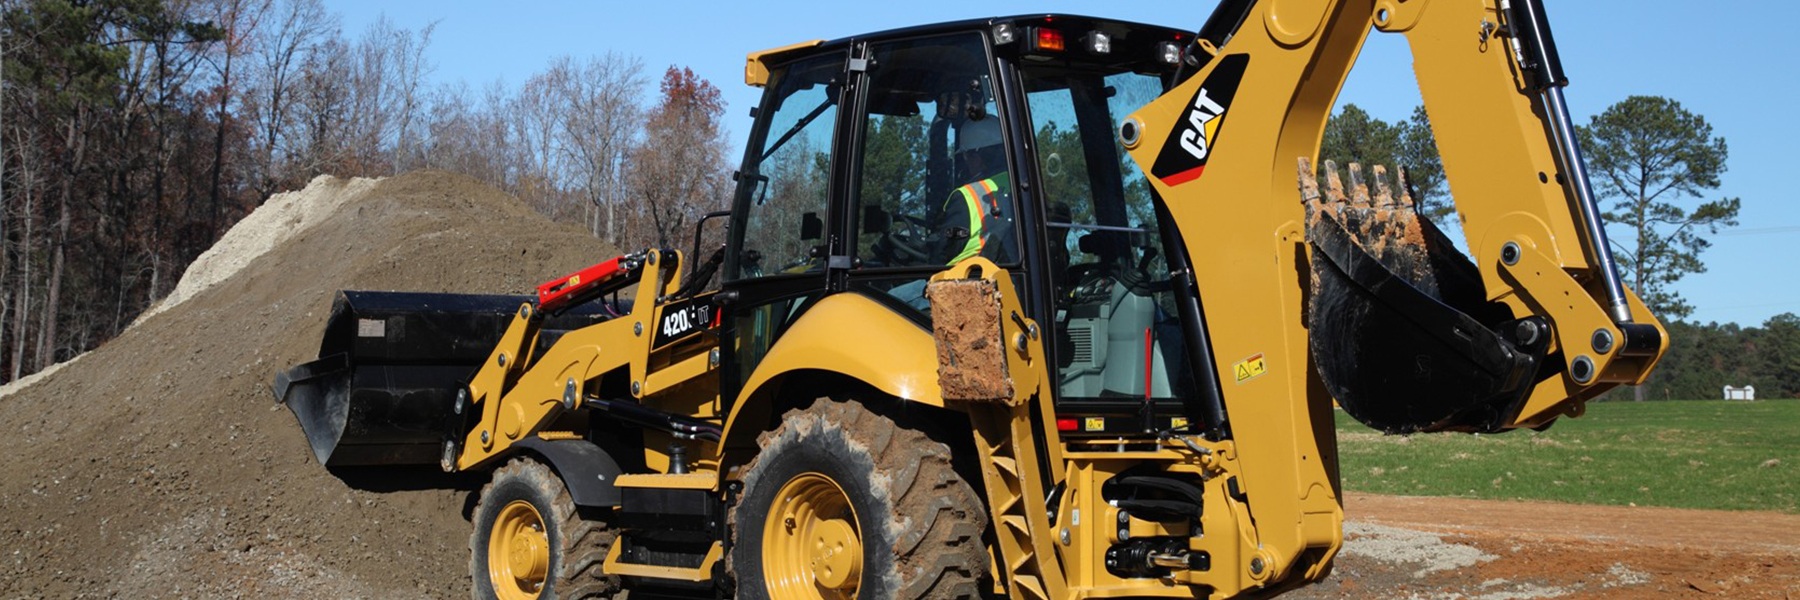 Used CAT Equipment for Sale in Florida